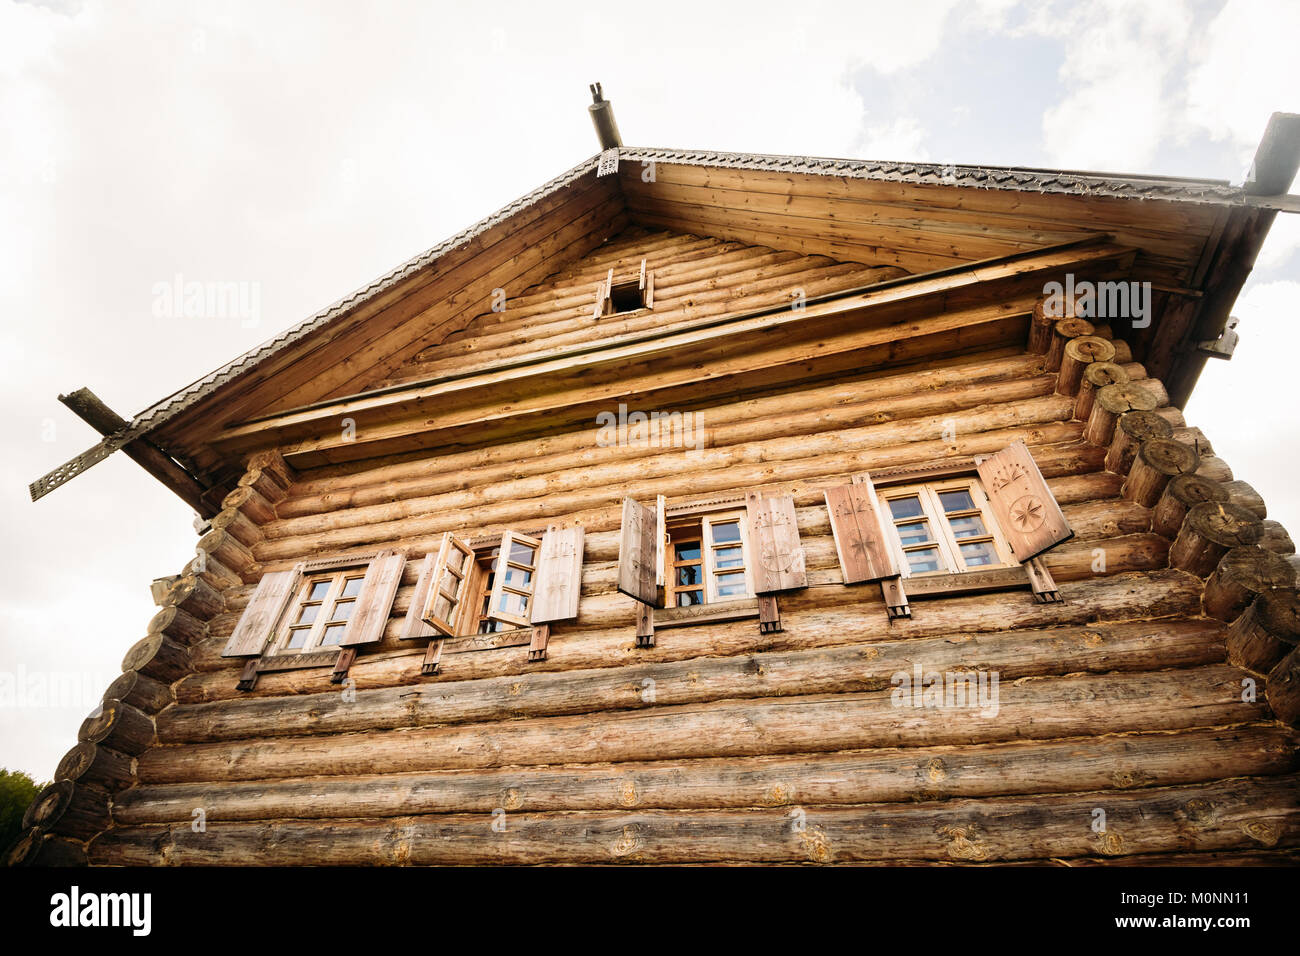 Wooden hut Slavic type against a gray sky. Stock Photo